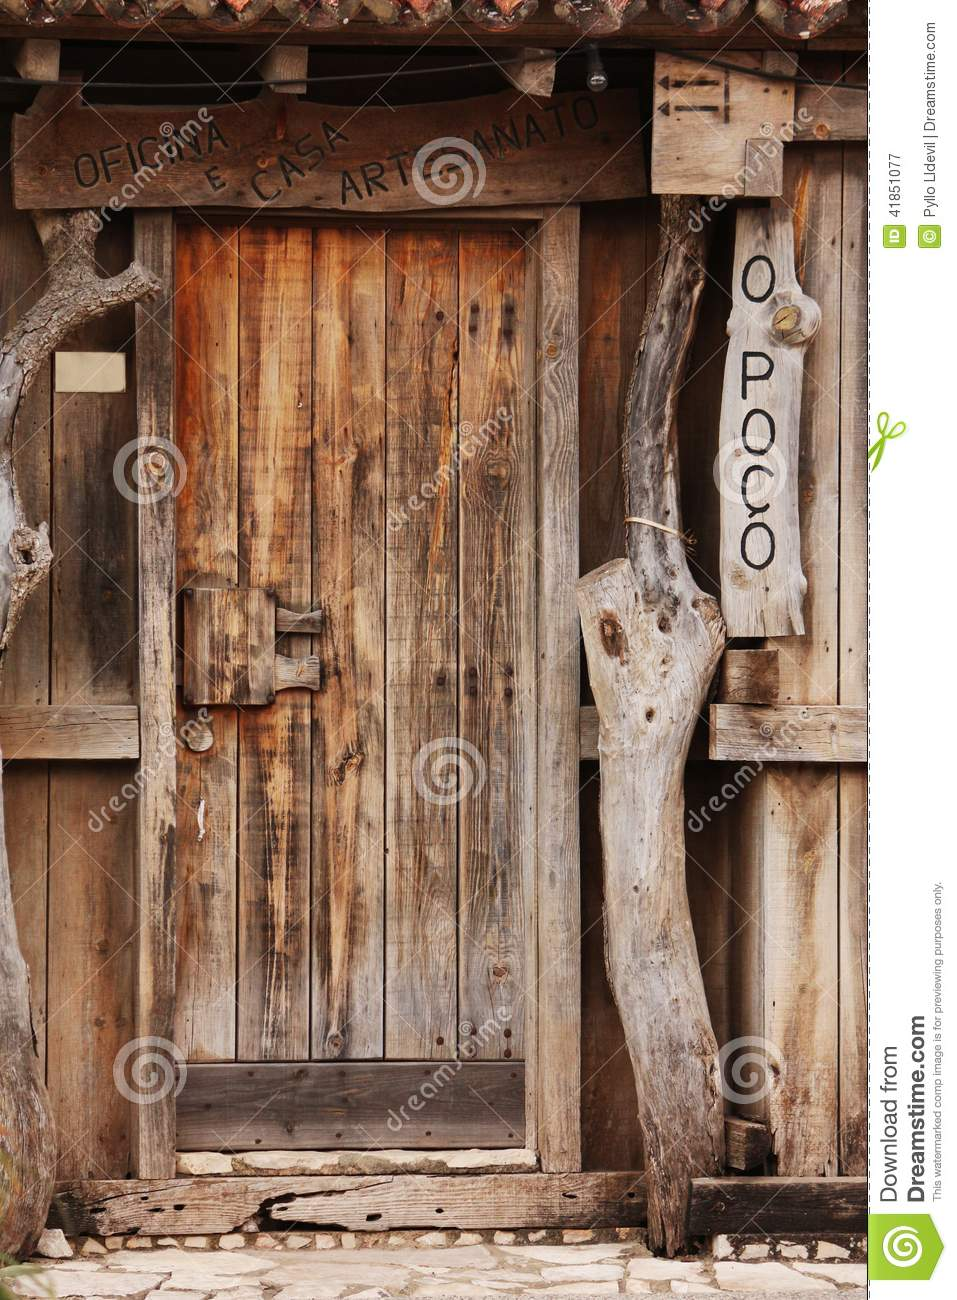 Le Meilleur Old Door Stock Image Image Of Historic Collect Landmark Ce Mois Ci